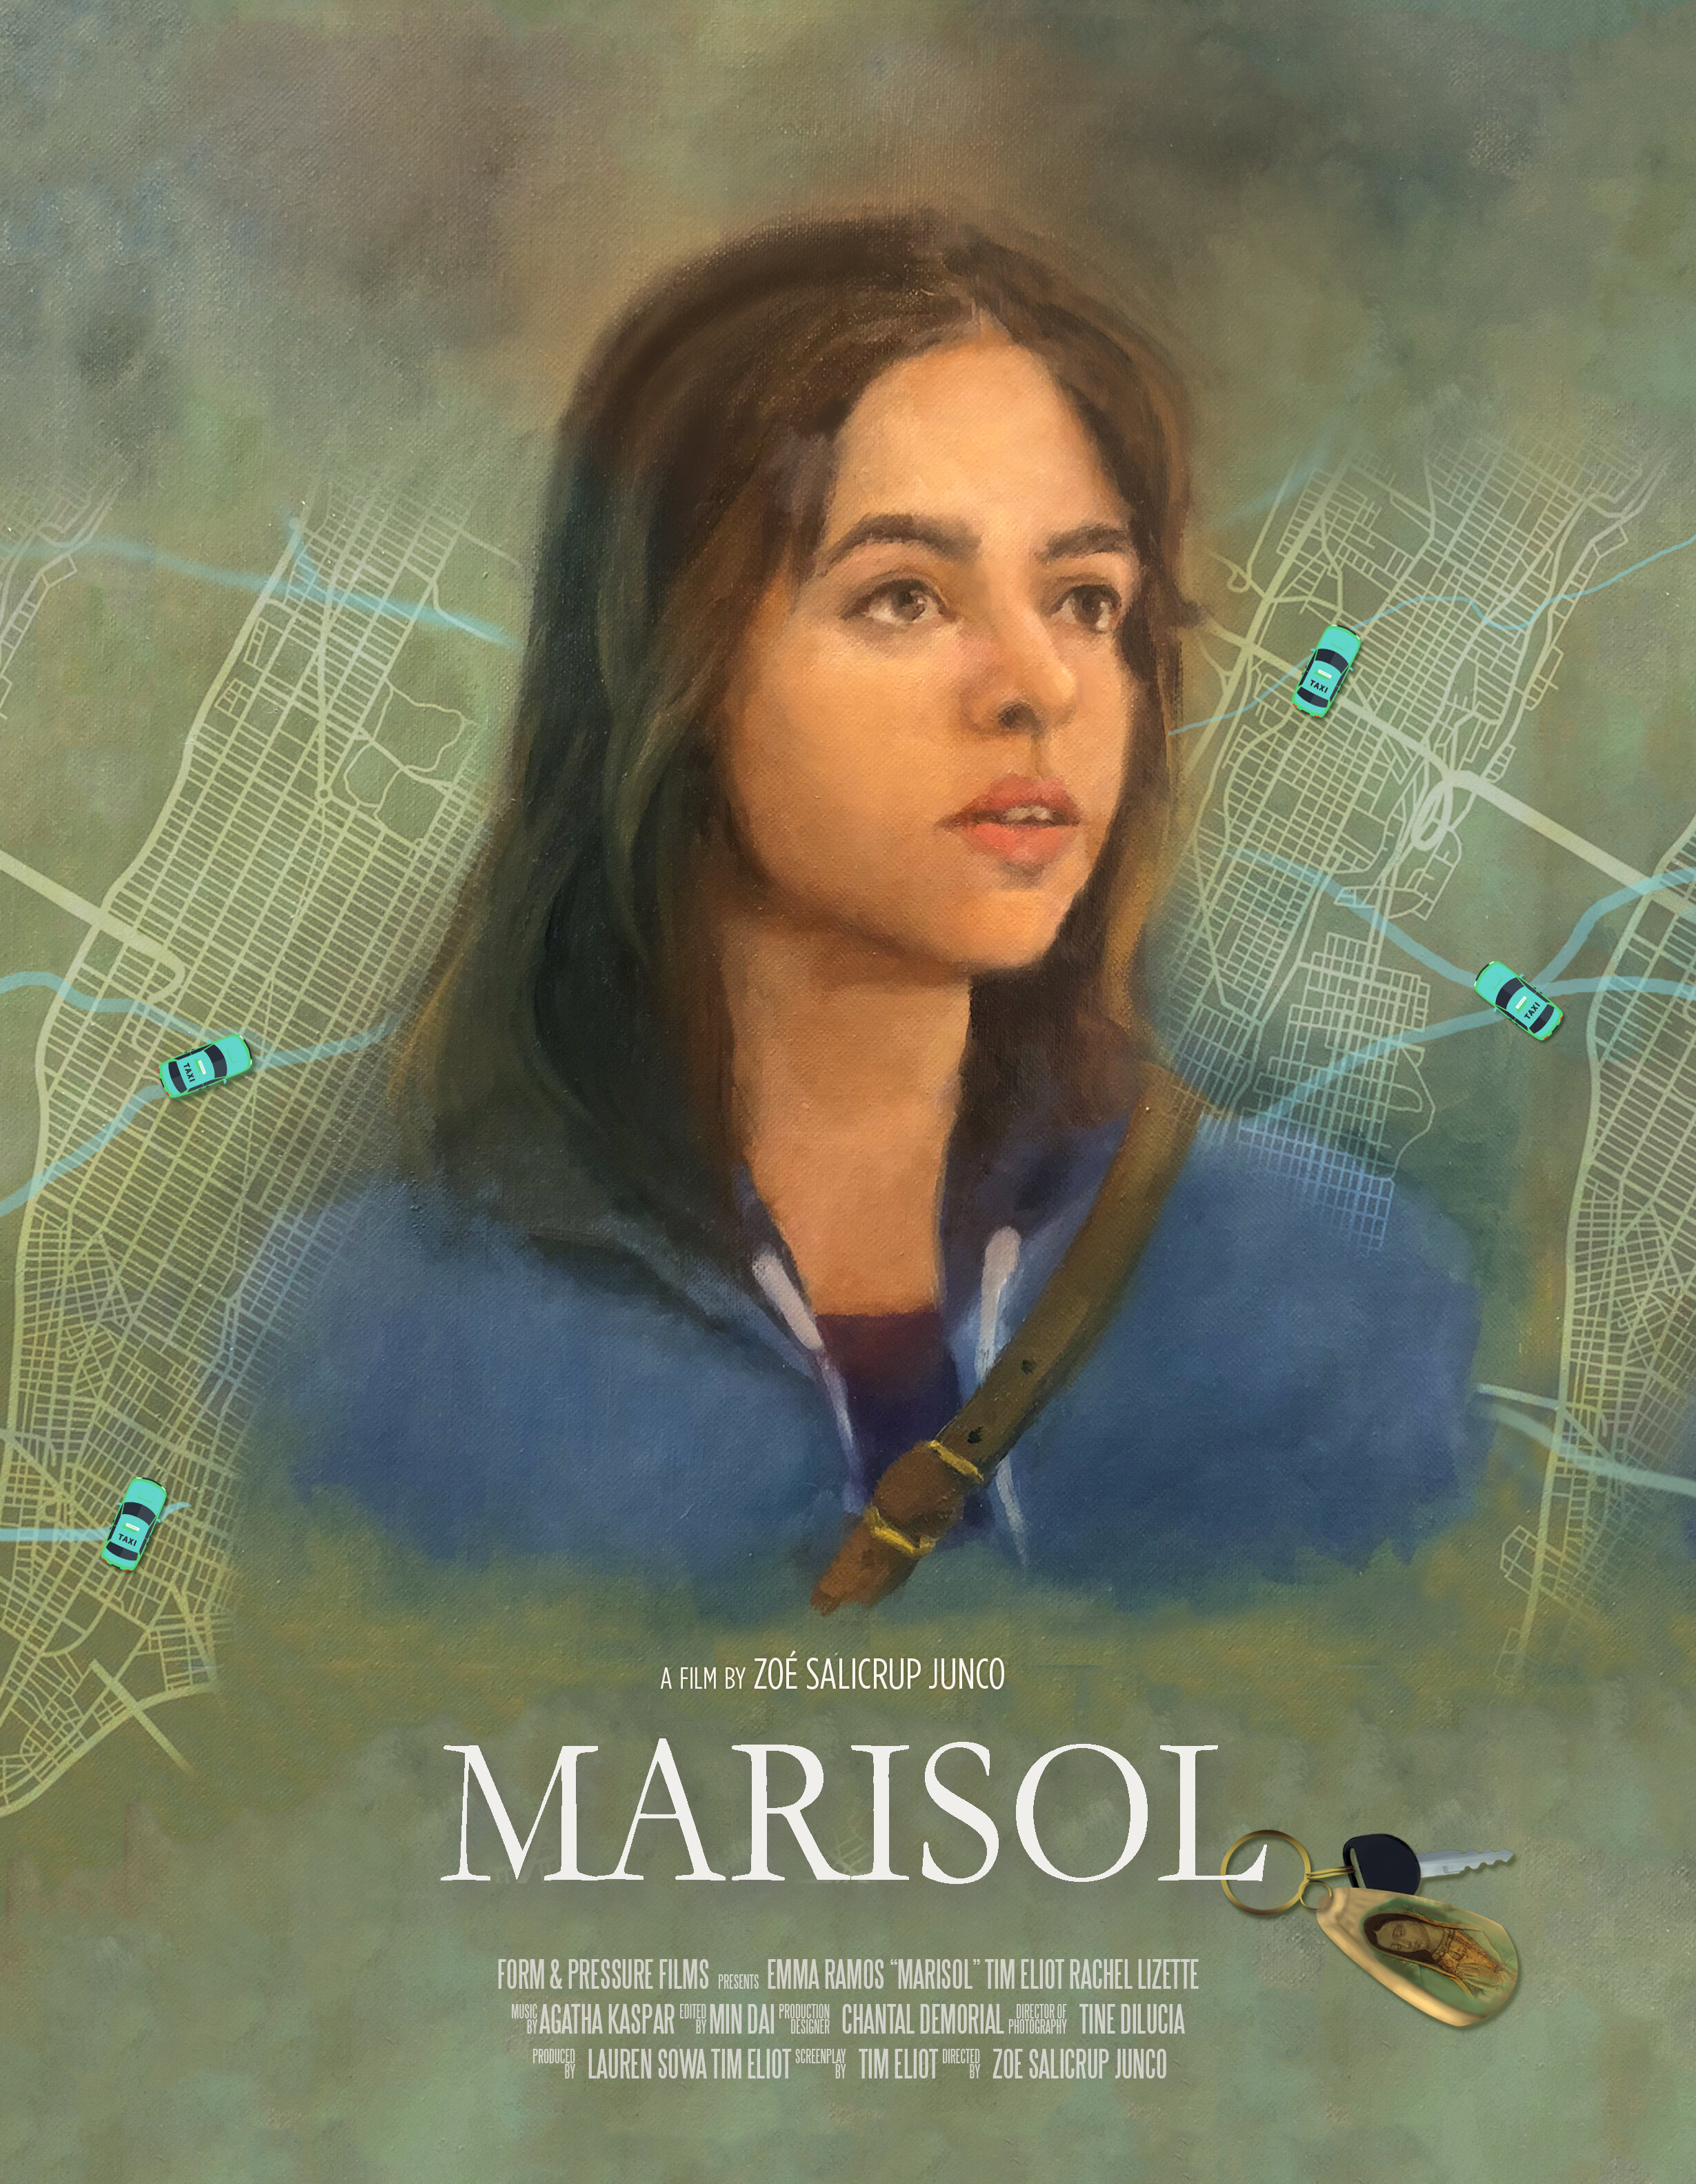 Marisol - directed by Zoé Salicrup Juncowritten by Tim Eliotproduced by Form & Pressure Films15 mins.